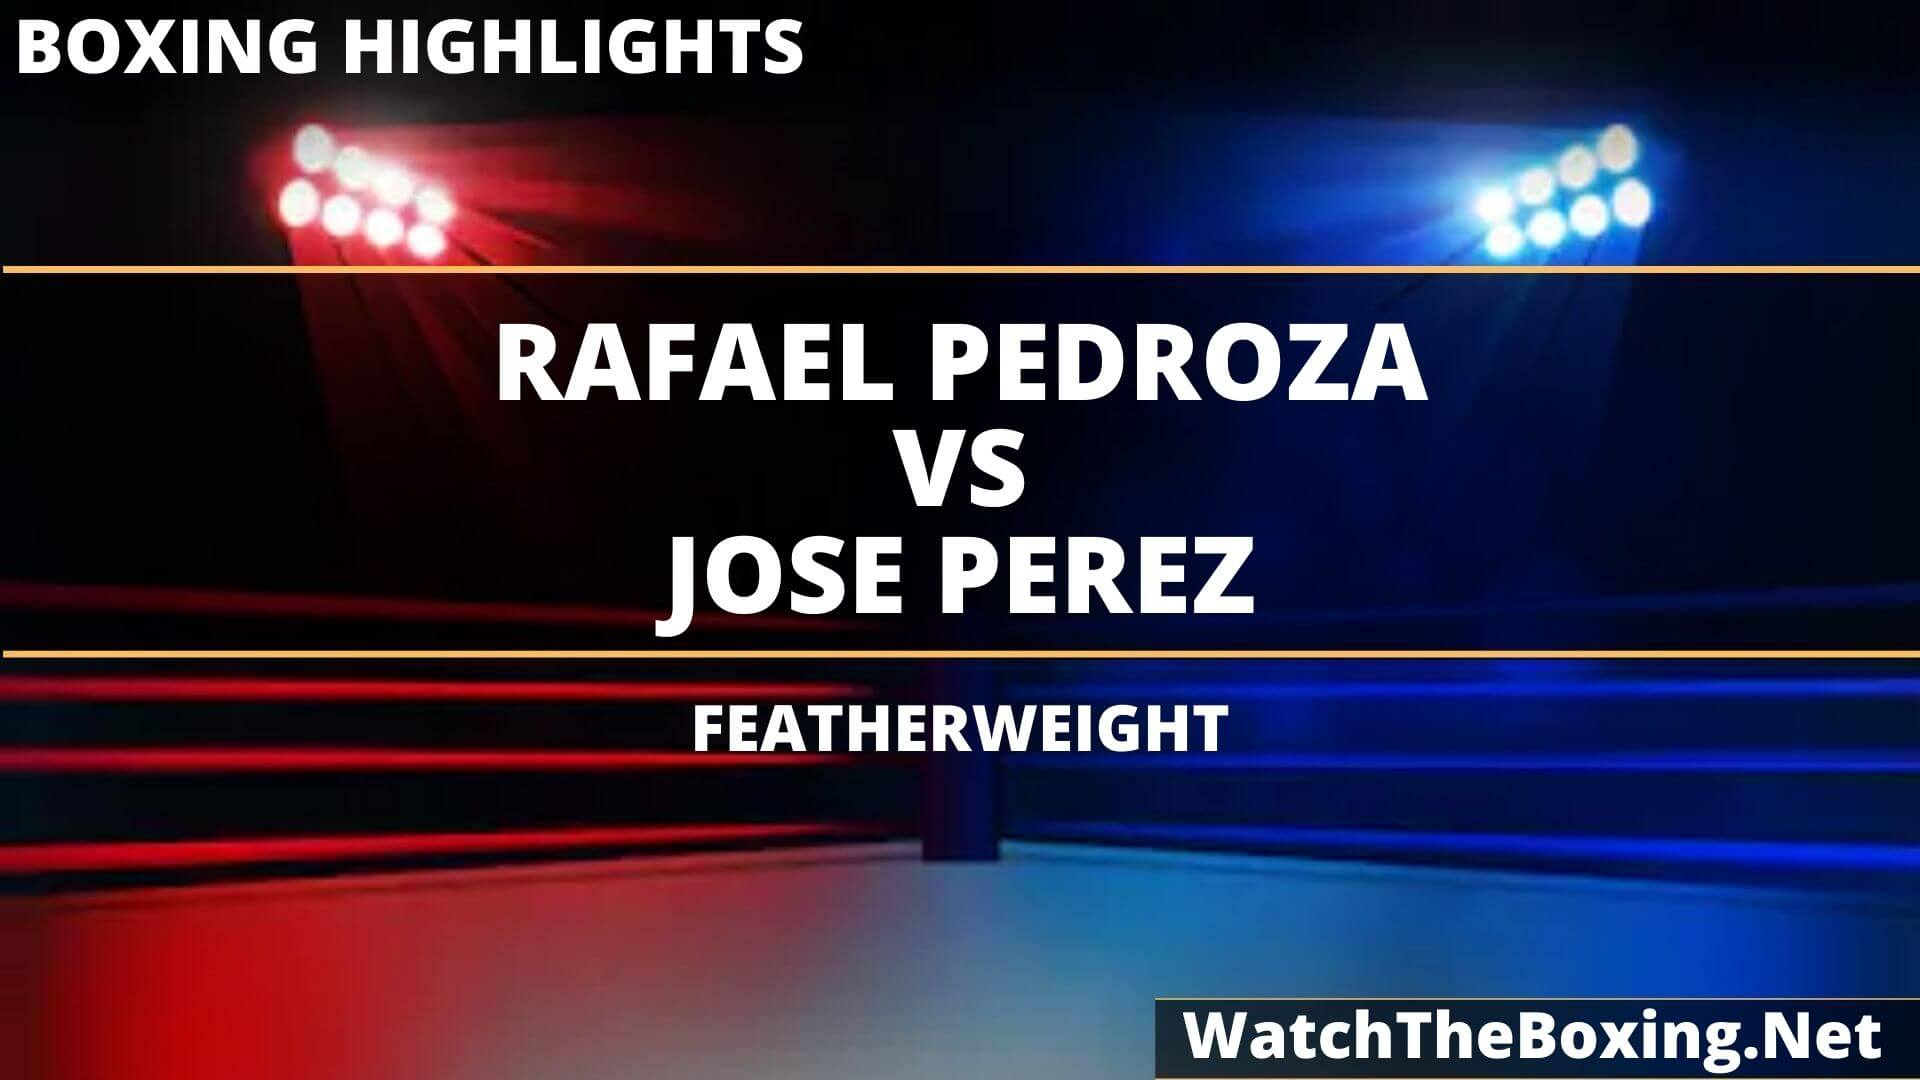 Rafael Pedroza Vs Jose Perez Highlights 2020